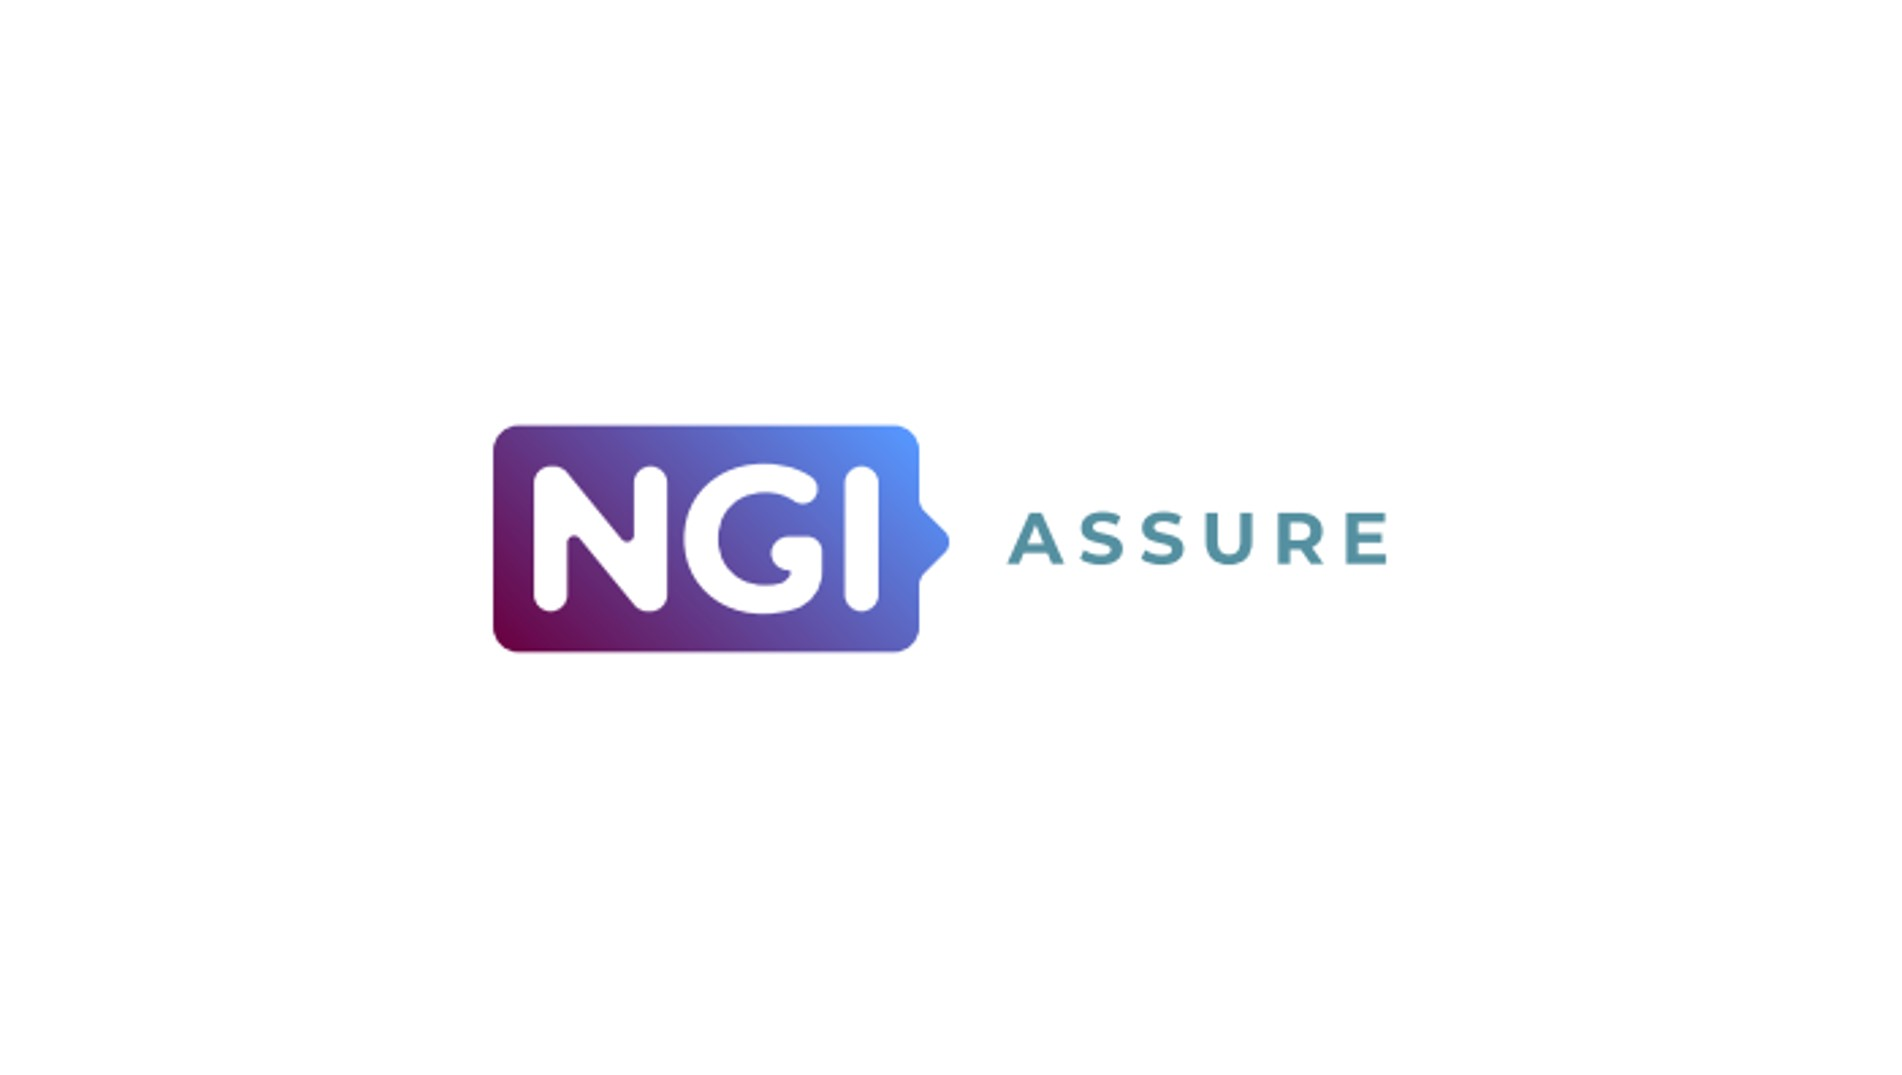 NGI Assure: the new European project coordinated by Innovation Engineering